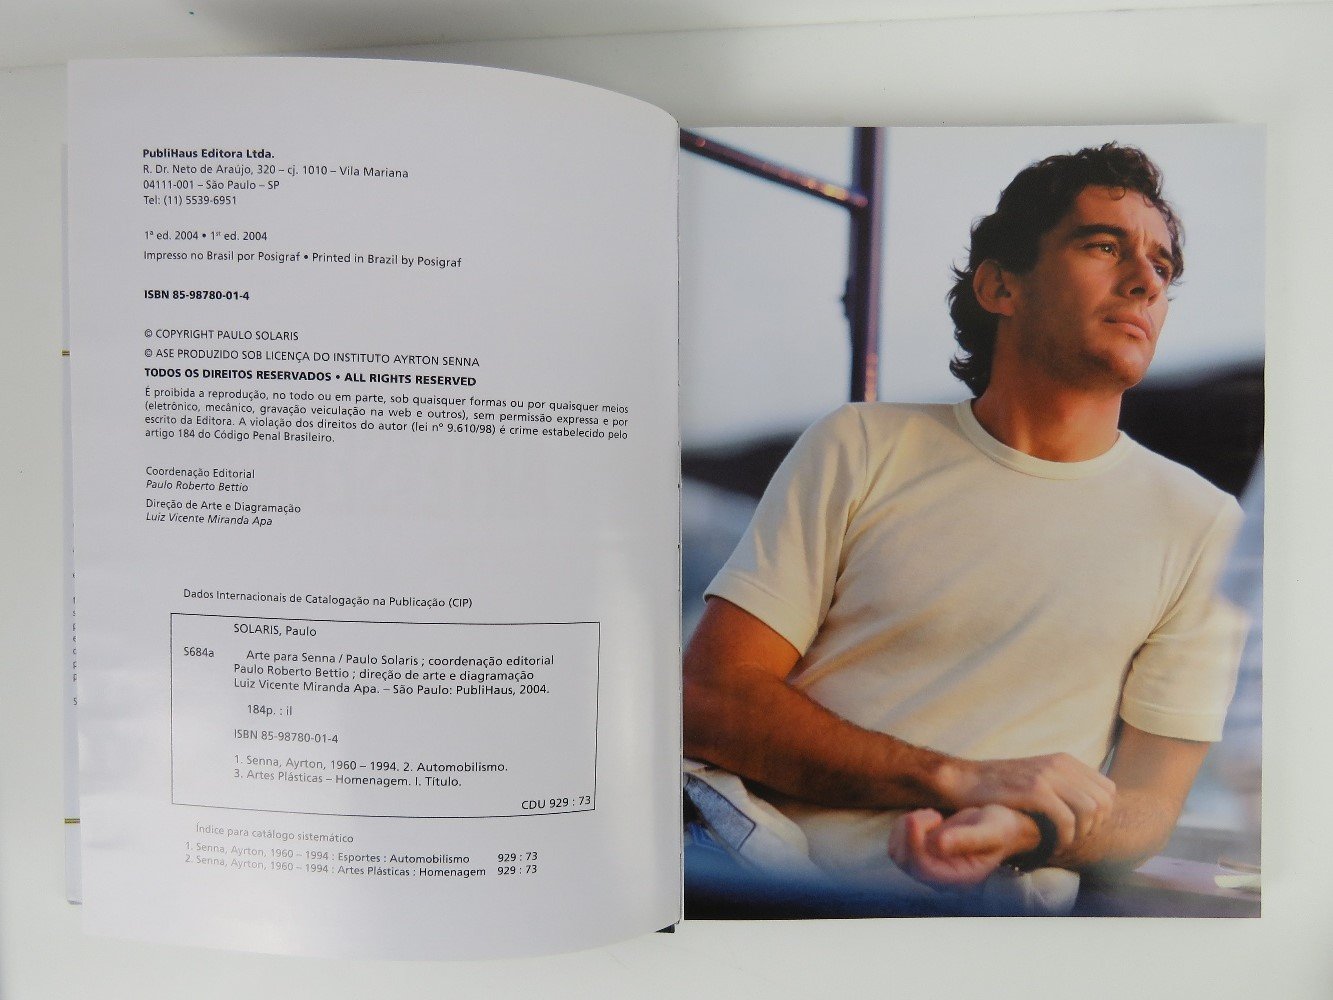 Arte Para Senna (Art for Senna) by Paulo Solaris, Portuguese edition, published 2004. Hardback book. - Image 2 of 2